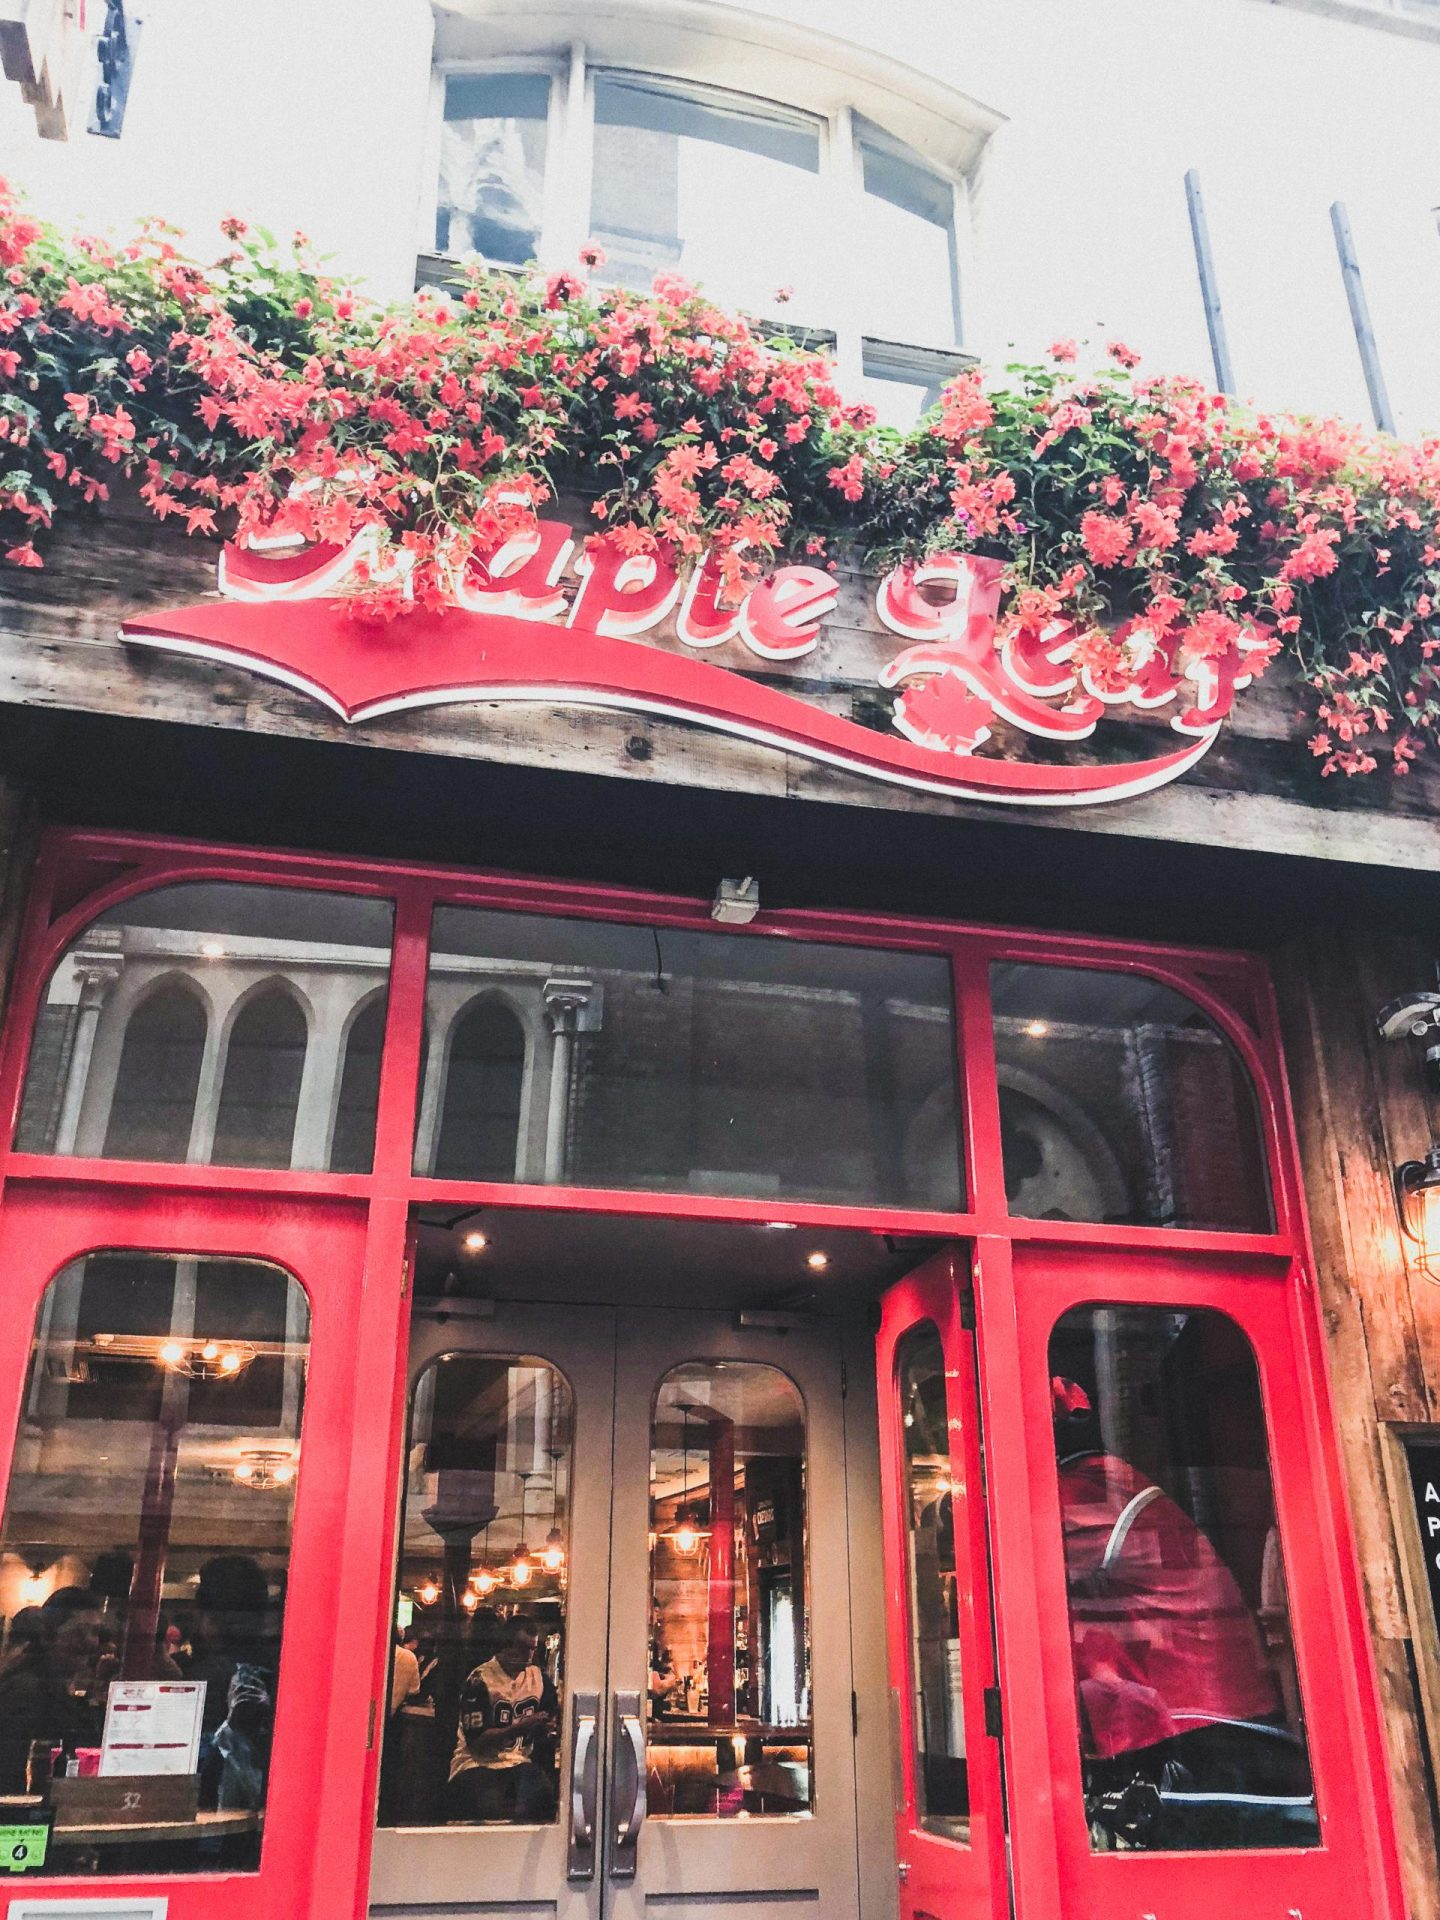 Exploring Covent Garden with Hotels.com, The Maple Leaf - Rachel Nicole UK Blogger